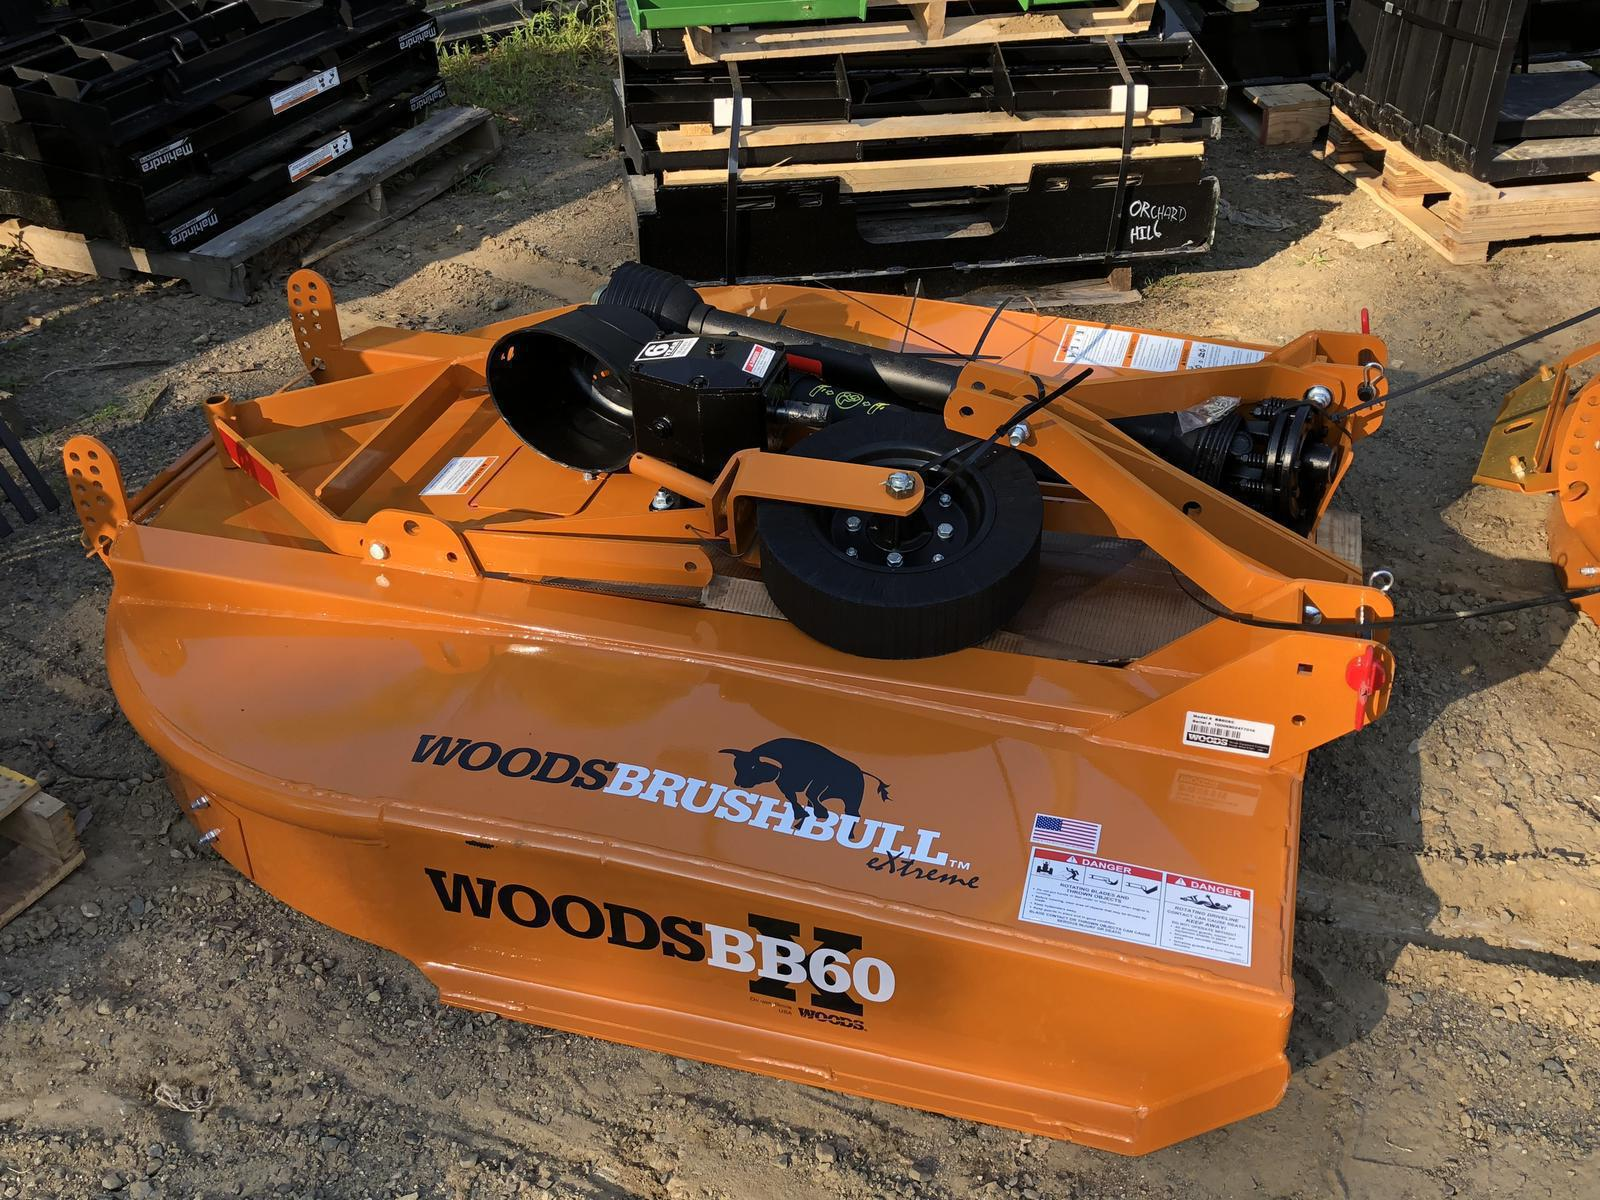 Inventory from Woods Orchard Hill Farm Equipment Belchertown, MA